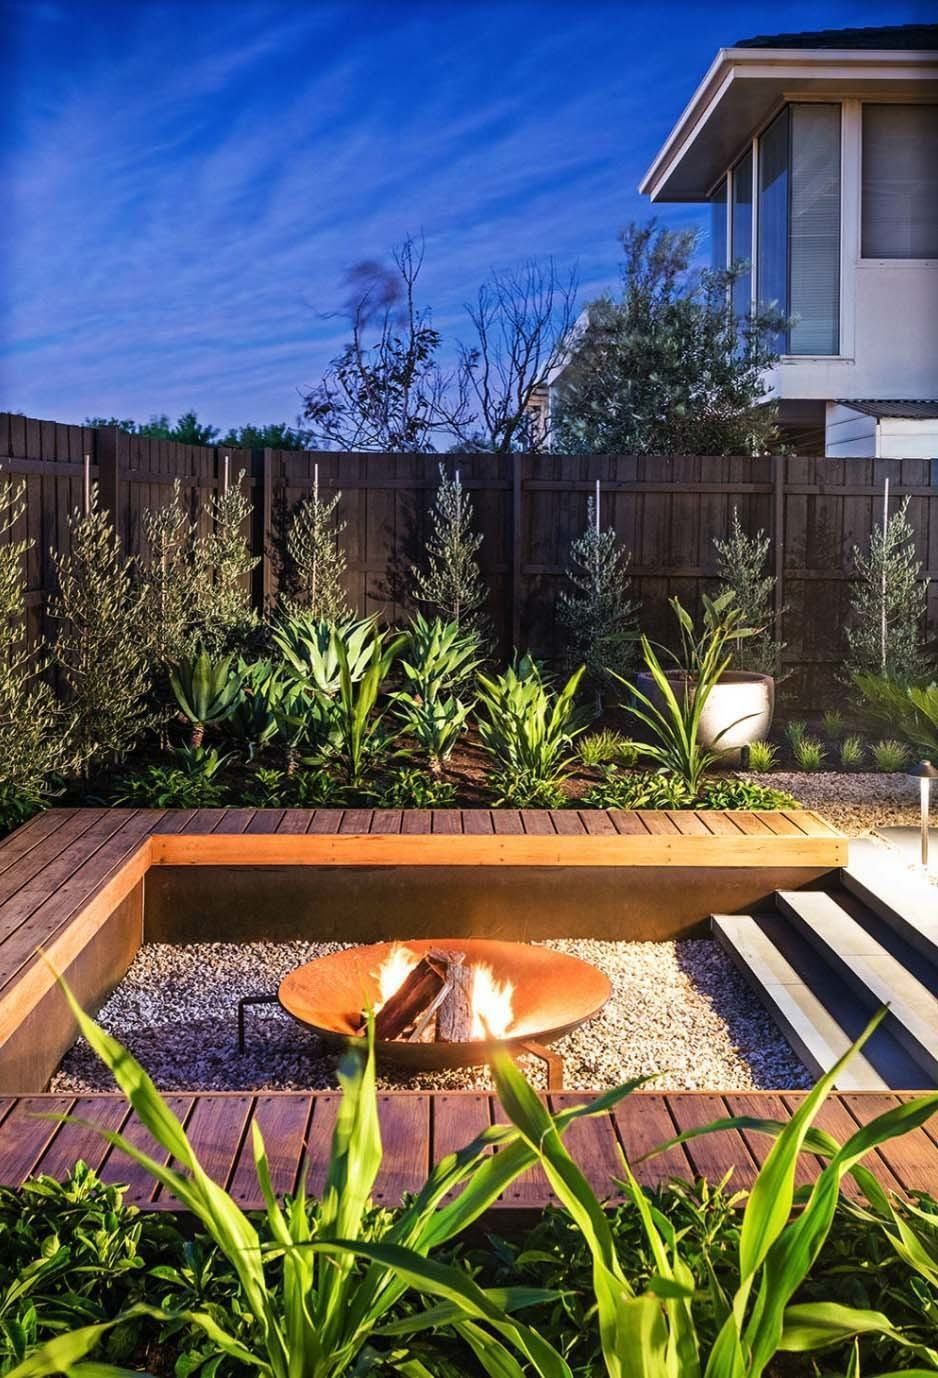 35 Modern Outdoor Patio Designs That Will Blow Your Mind Modern Outdoor Patio Outdoor Patio Designs Fire Pit Backyard Modern patio fire pit